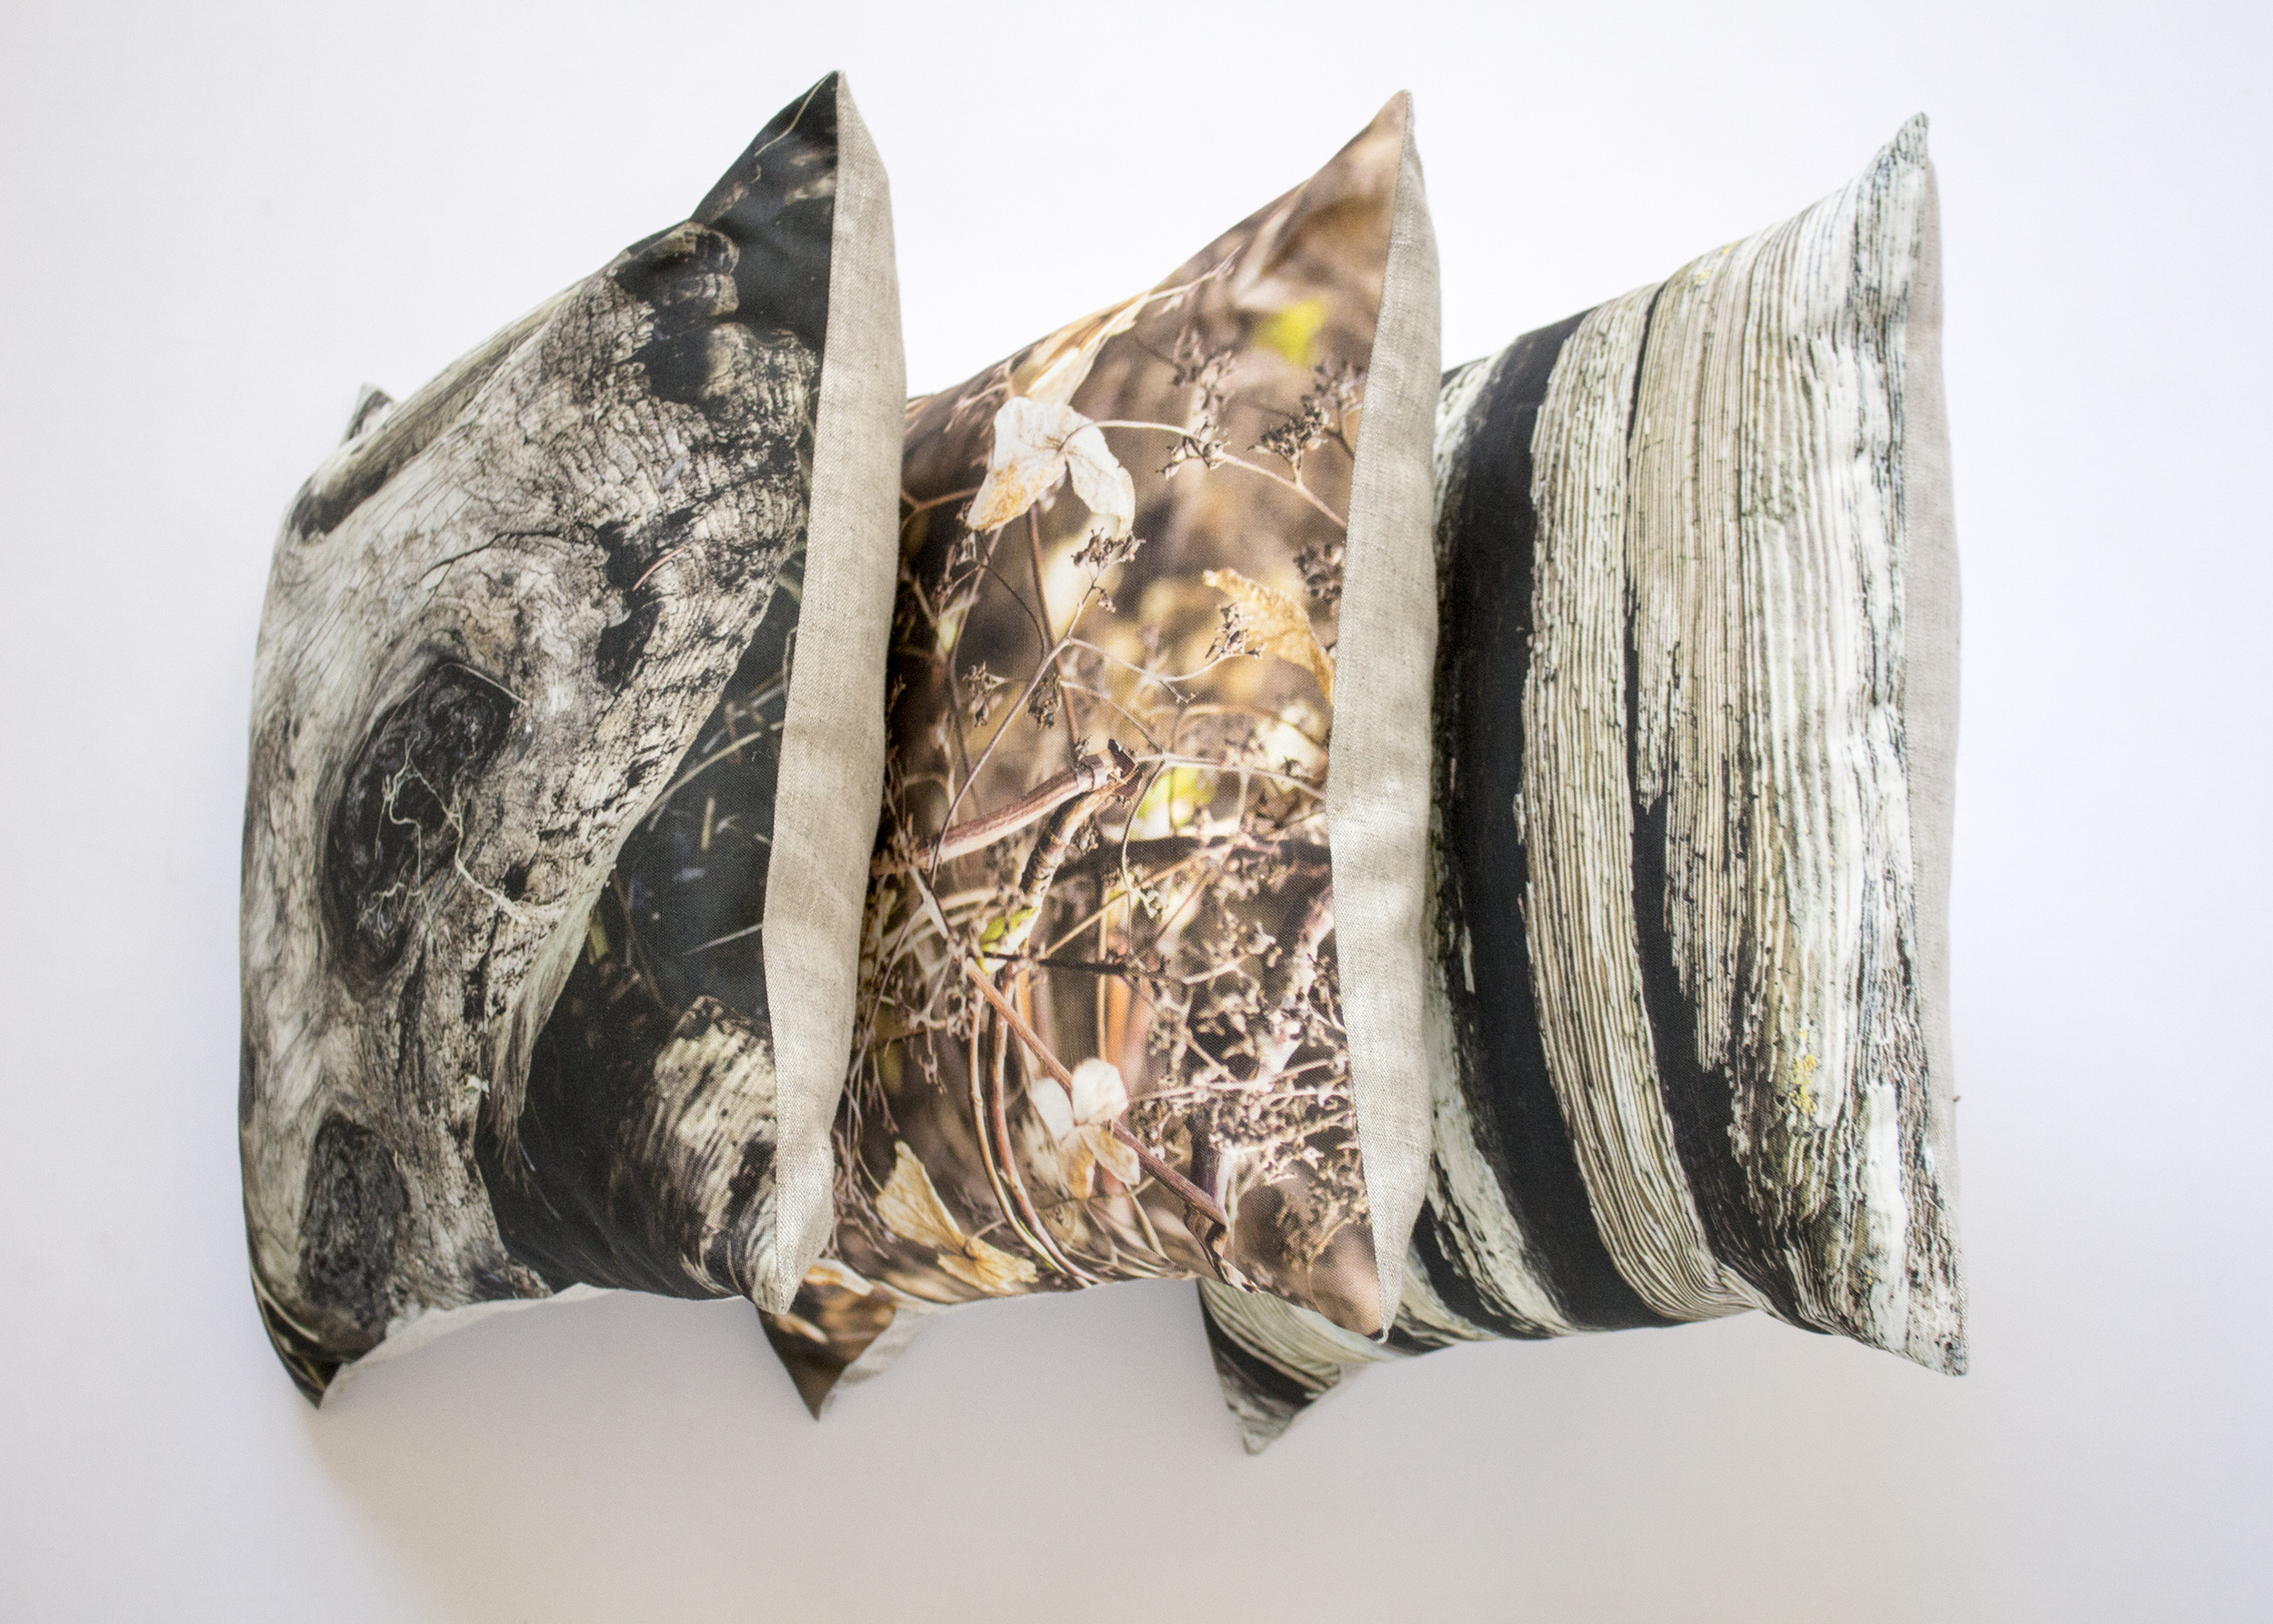 Three of Kær's most popular pillows, bringing the great outdoors—like driftwood and lacy leaves—inside.